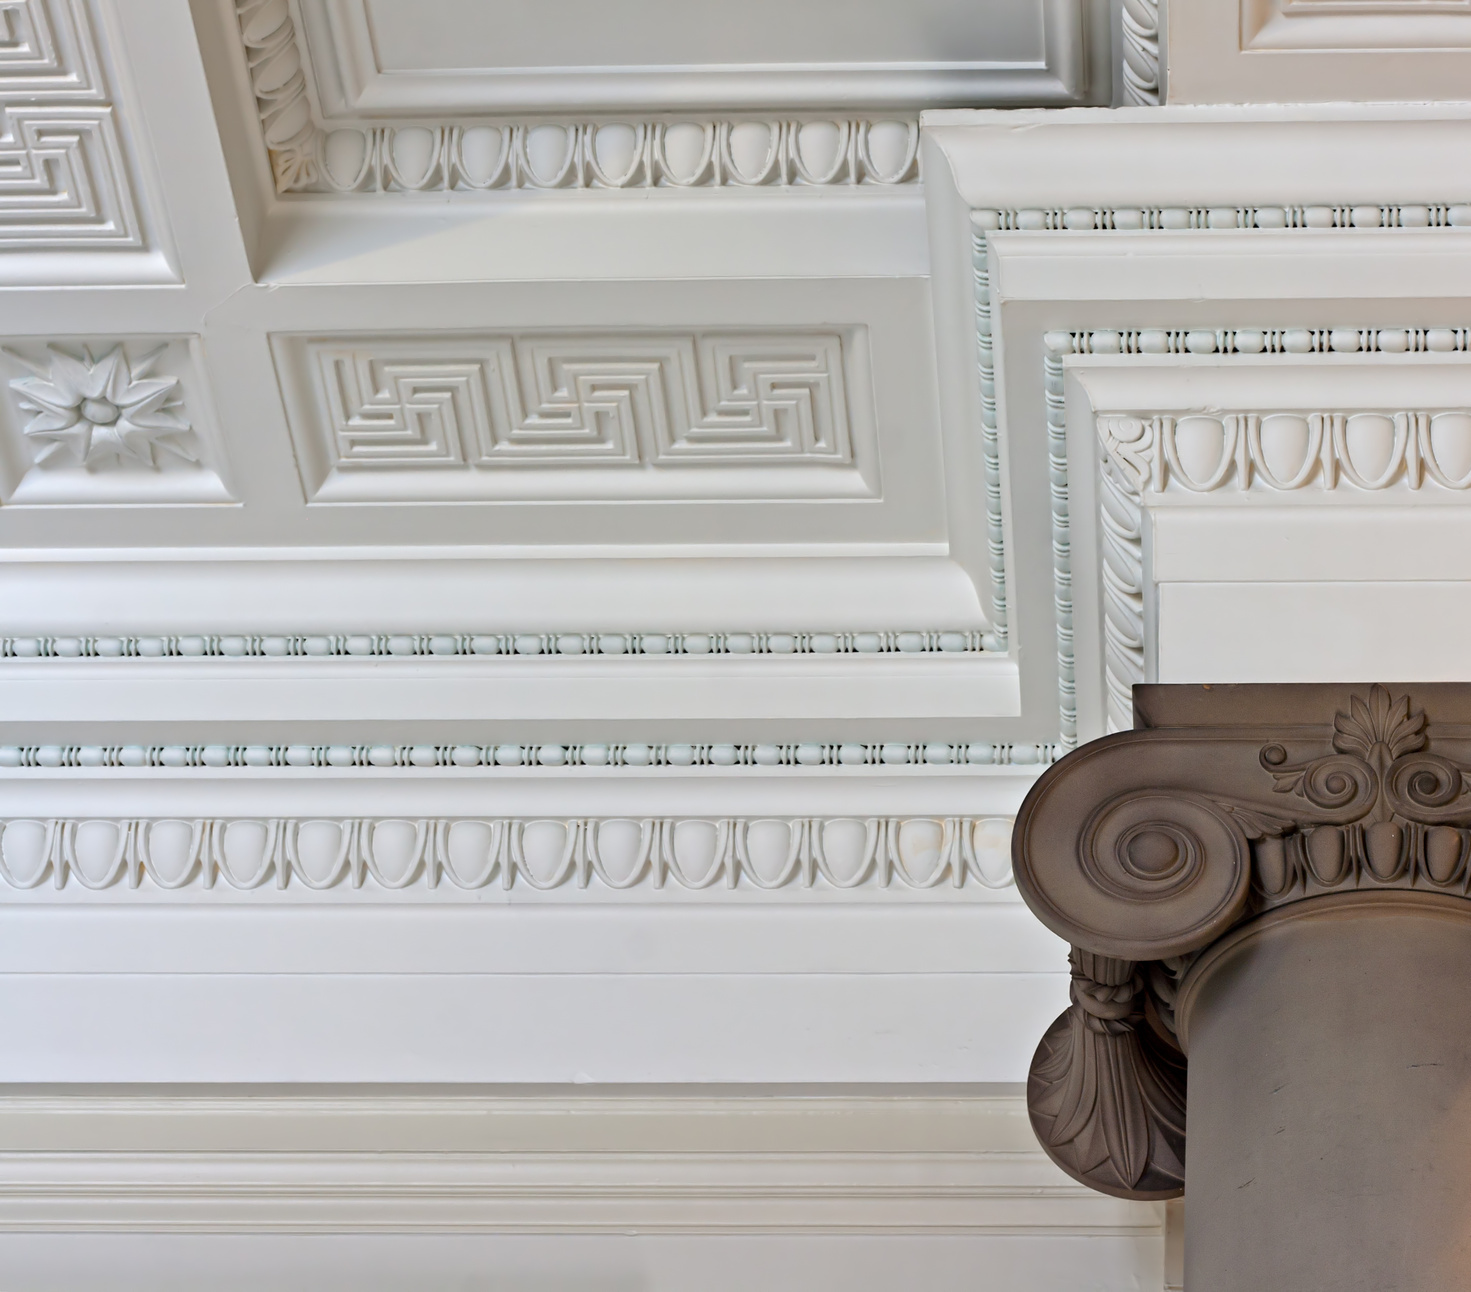 Make Your House Look More Beautiful With The Proper Use Of Cornice